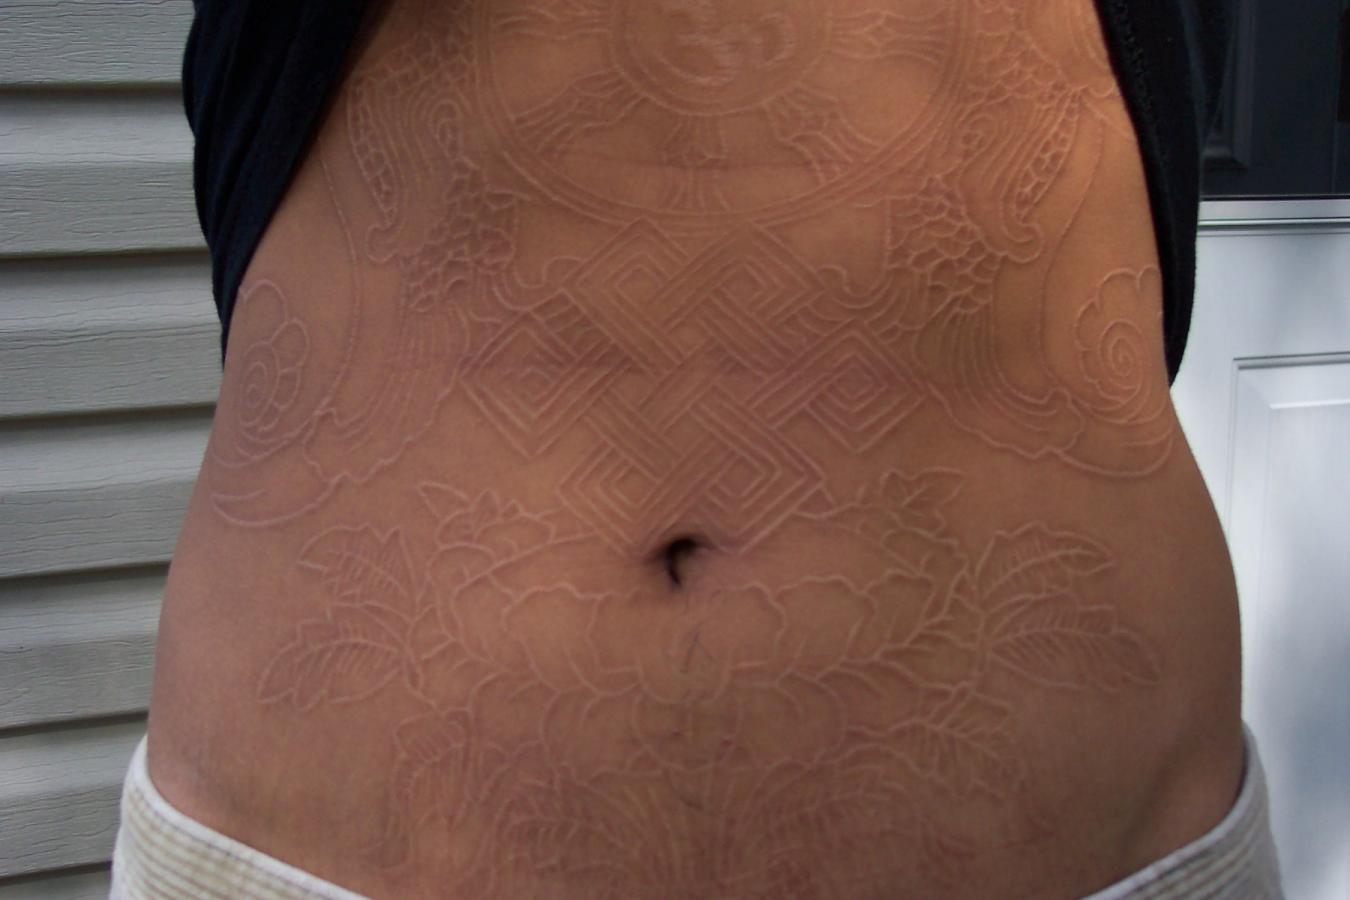 Girl Show Amazing Scarification Tattoo Design Idea